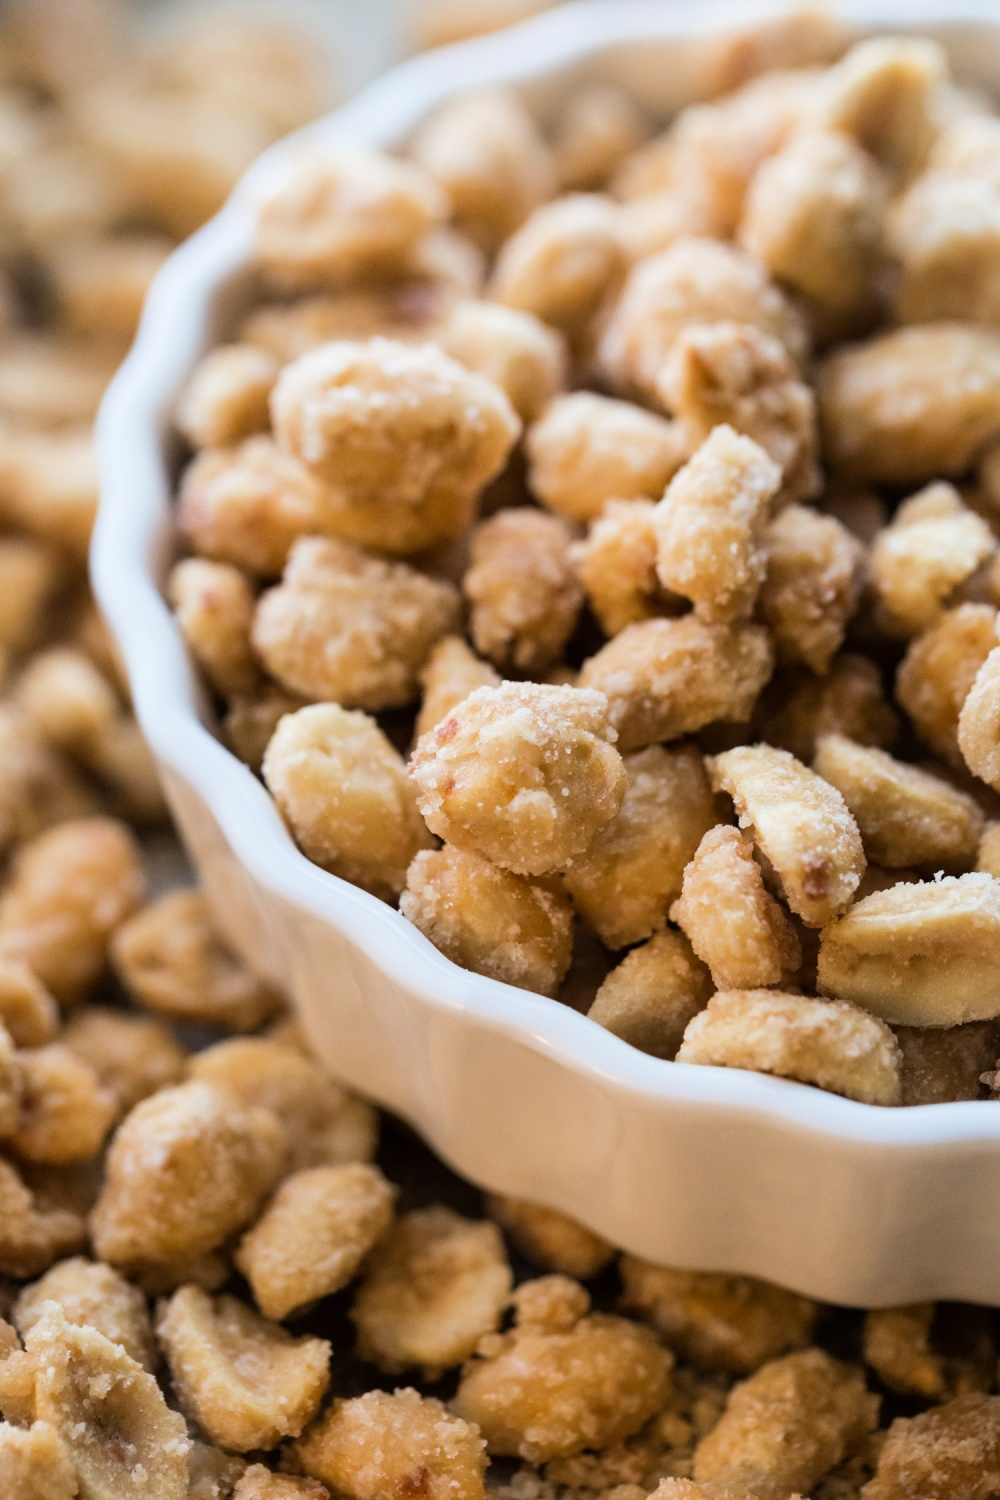 candied peanuts in a white bowl